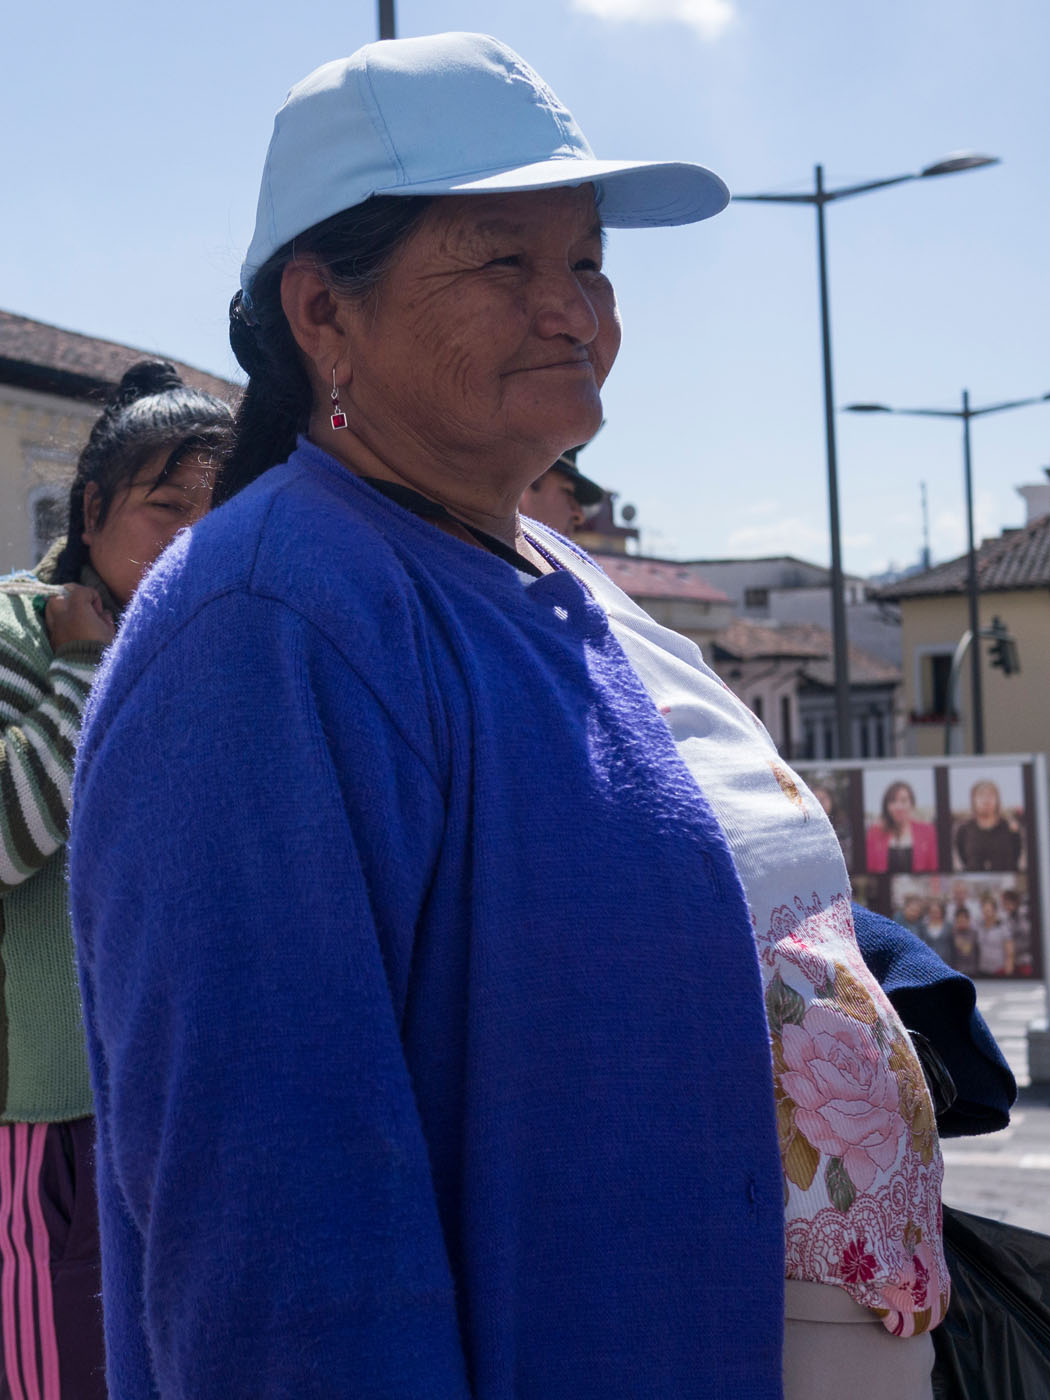 quito-ecuador-travel-streetlife-reisefotos_005